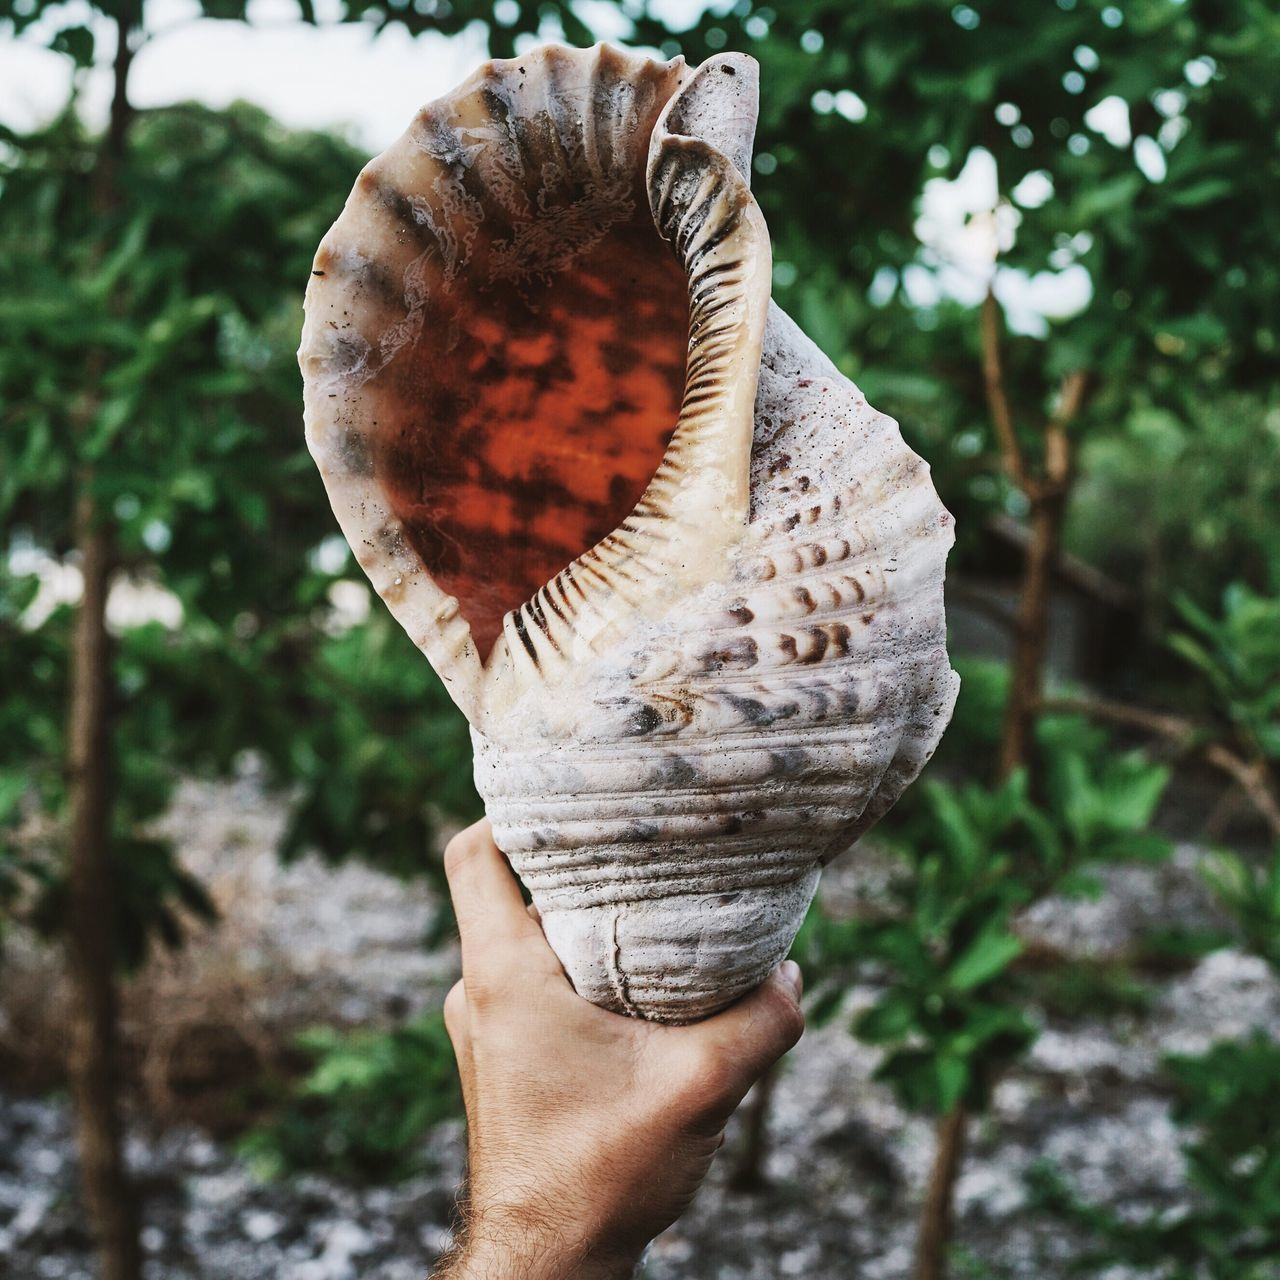 Close-Up Of Hand Holding Seashell